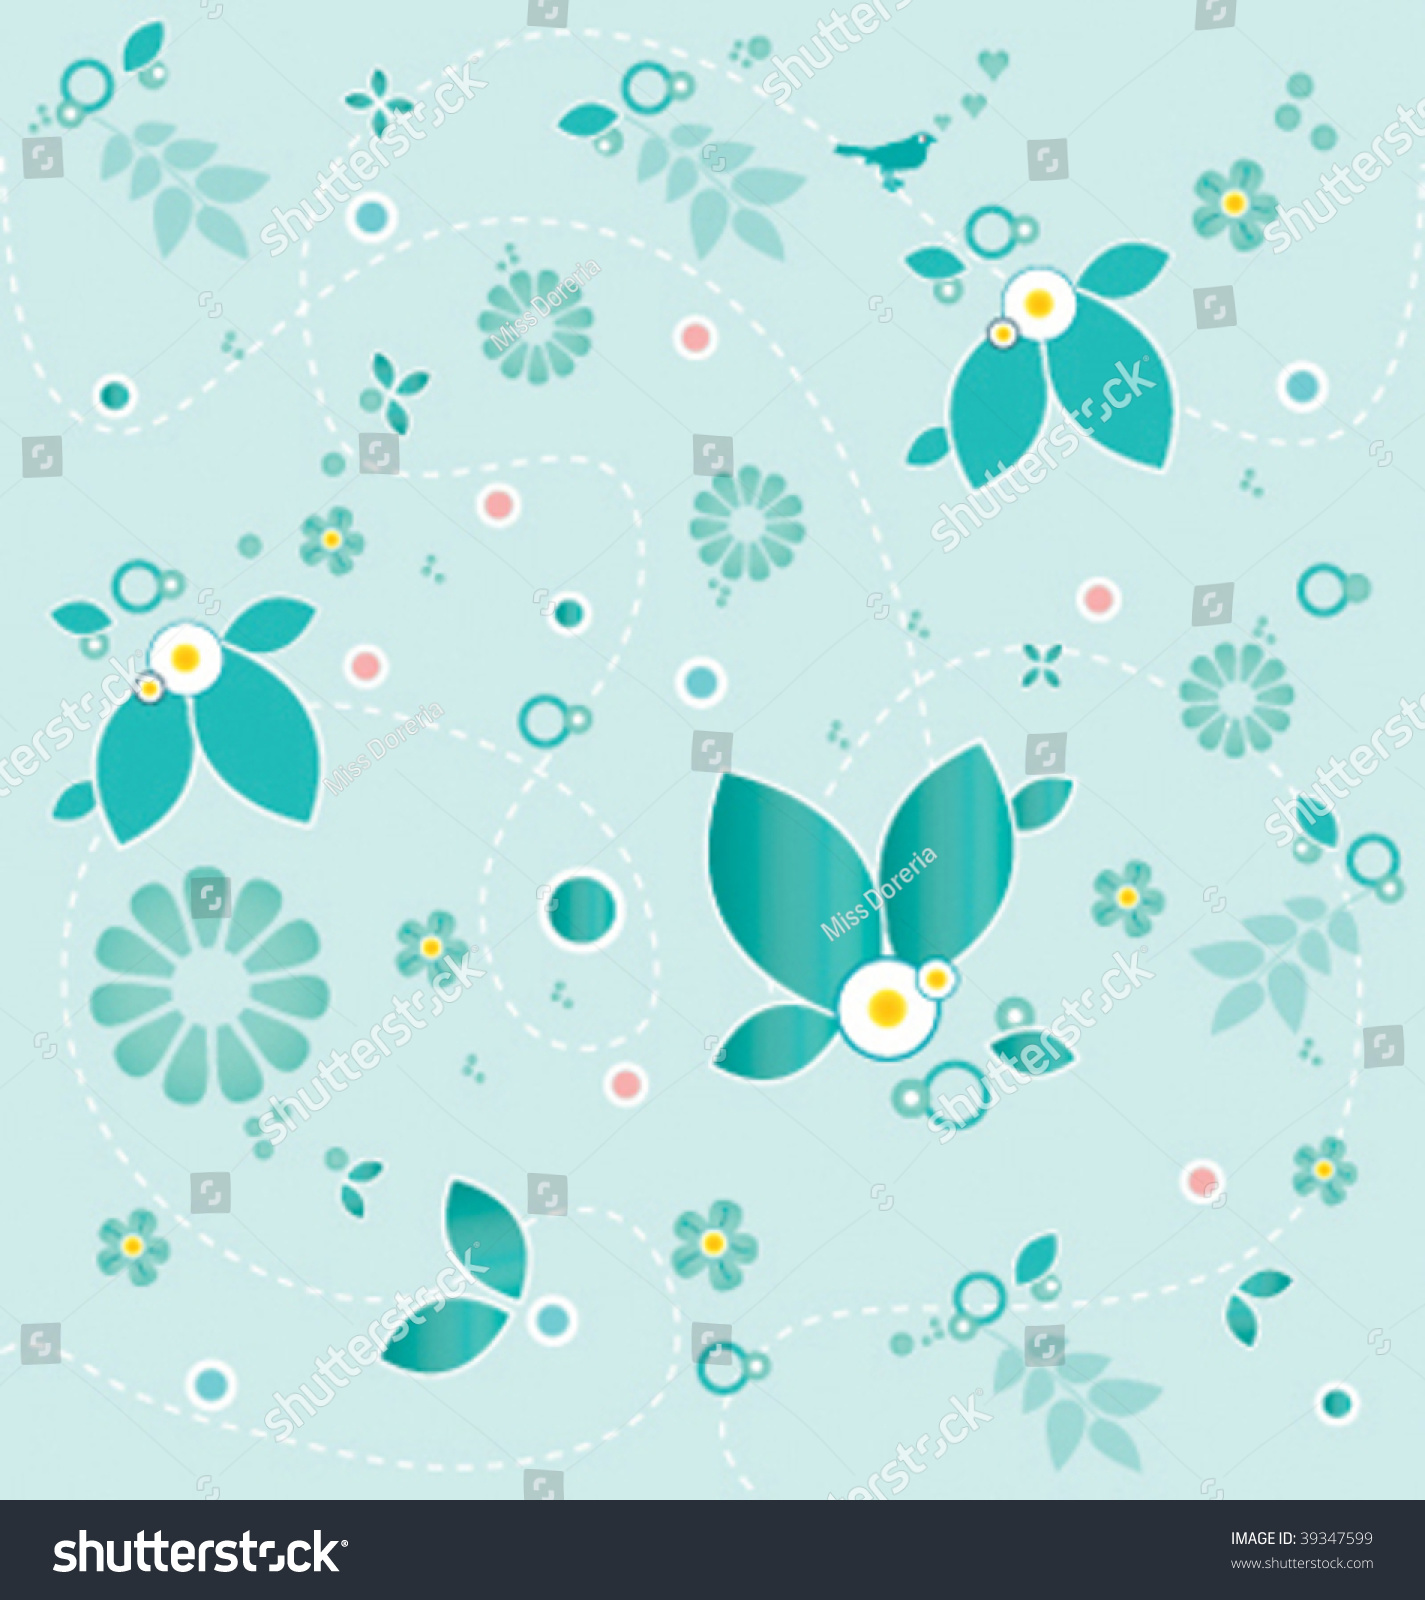 Floral Wallpaper Light Blue Elements Stock Vector Royalty Free